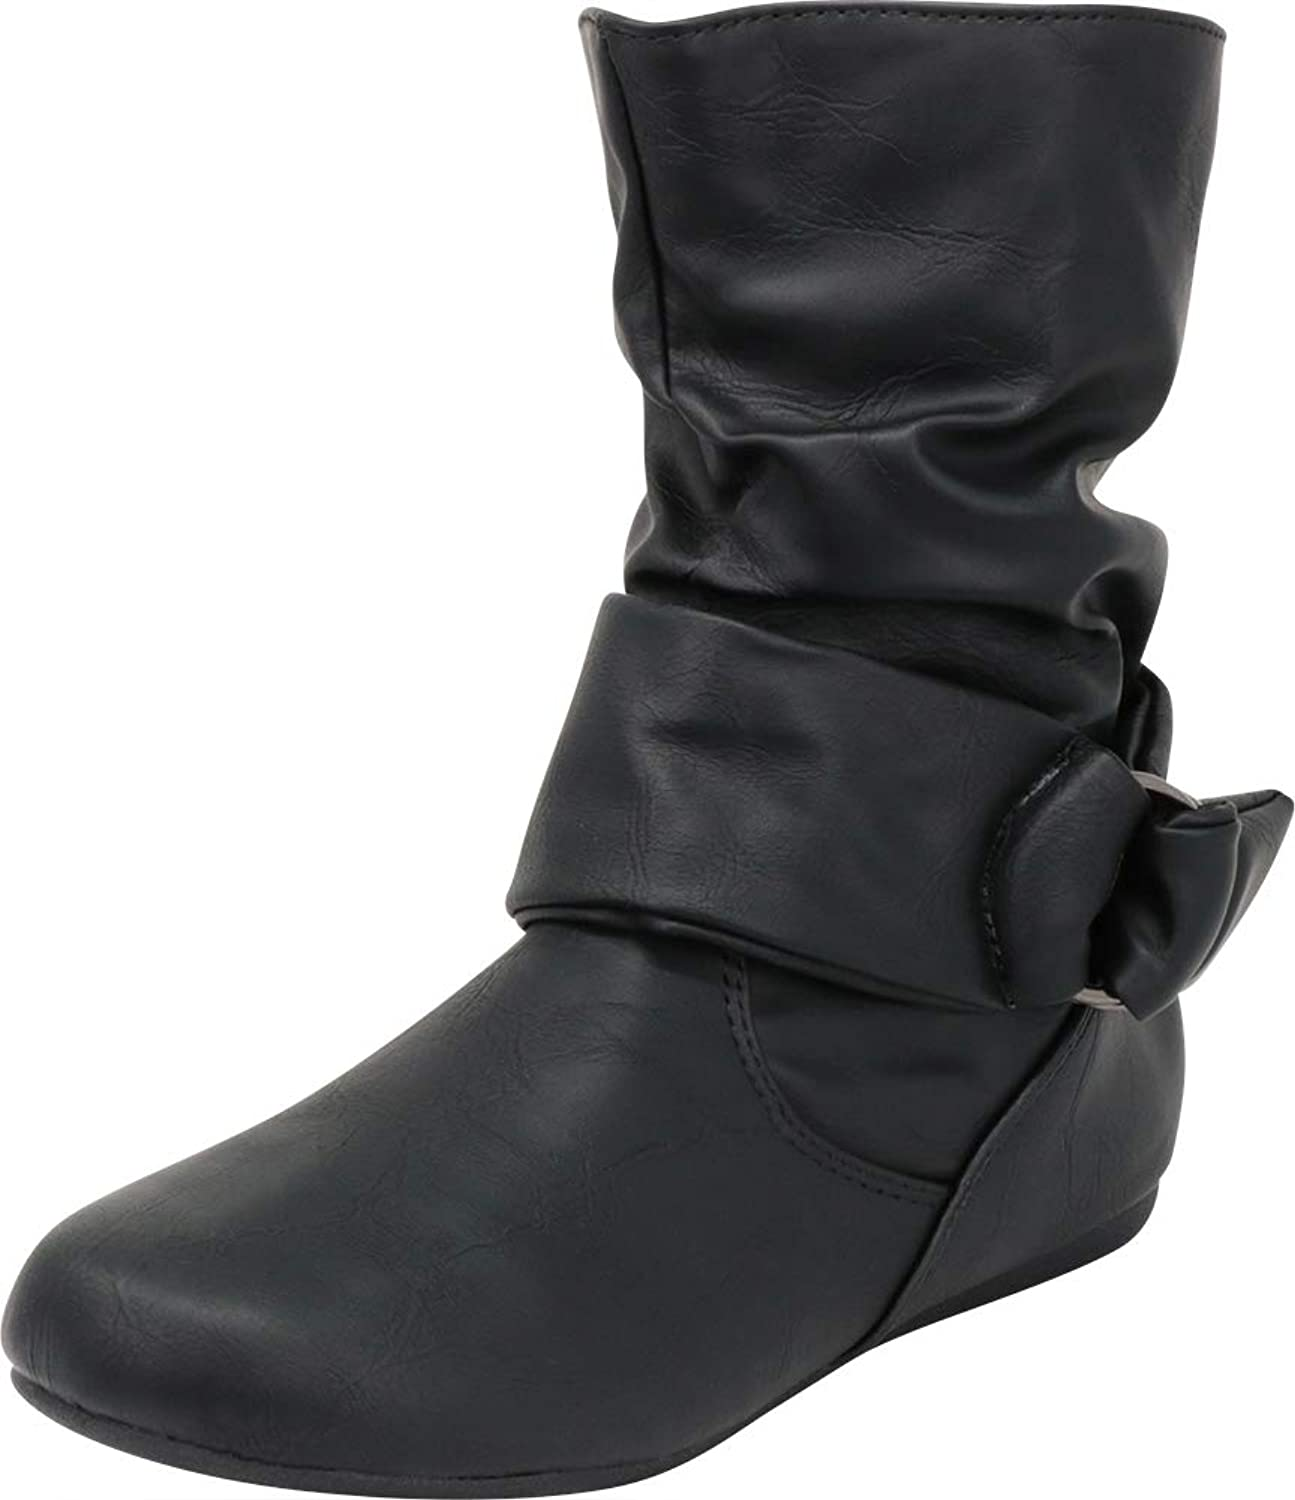 Cambridge Select Women's Round Toe Soft Slouch Wraparound Strap Flat Ankle Boot